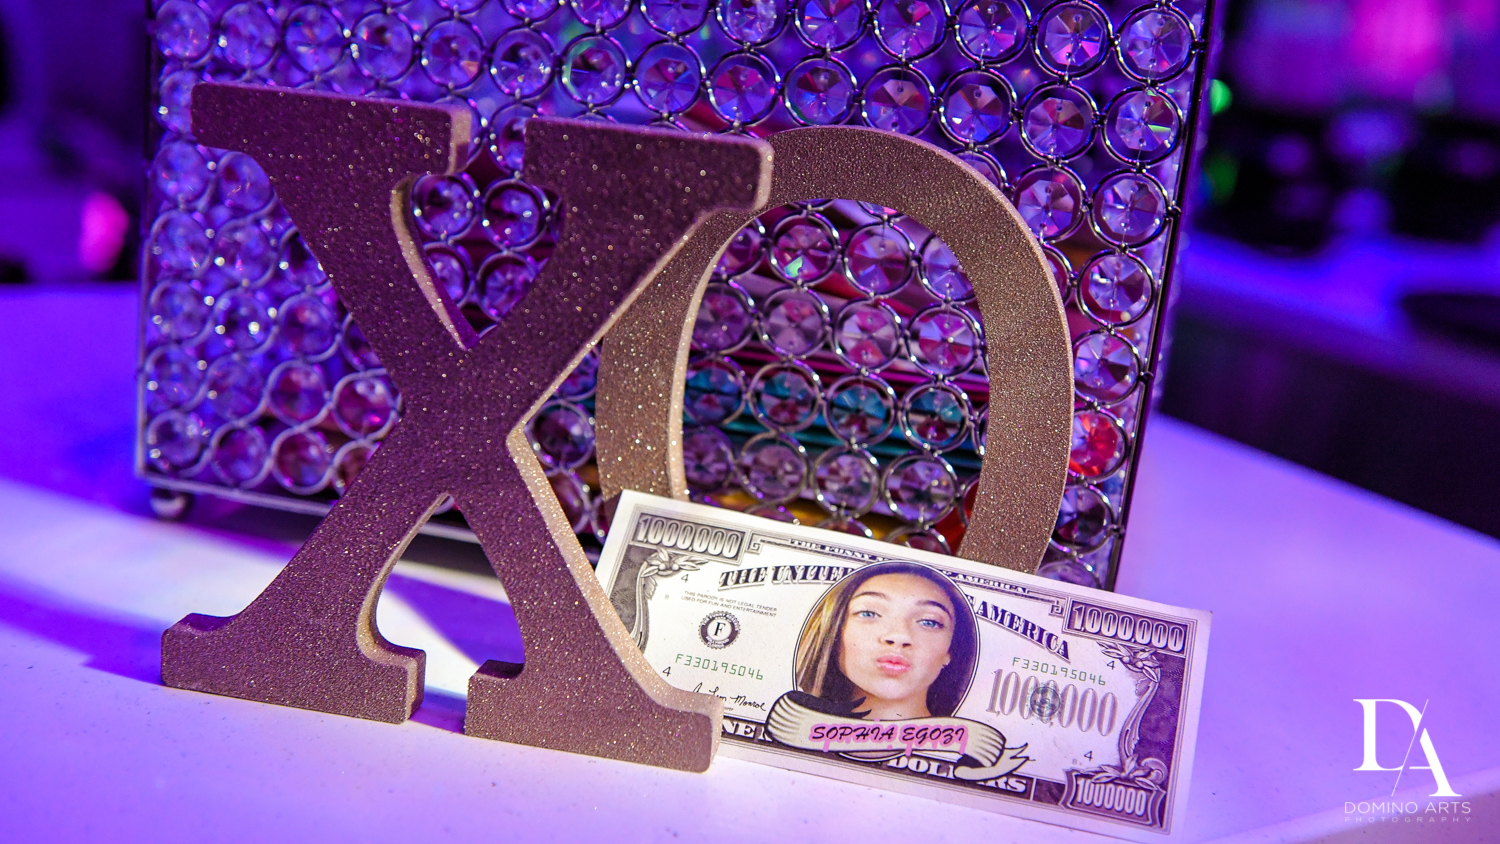 custom money at Pink XO Bat Mitzvah at The Venue Crystal Ballroom by Domino Arts Photography